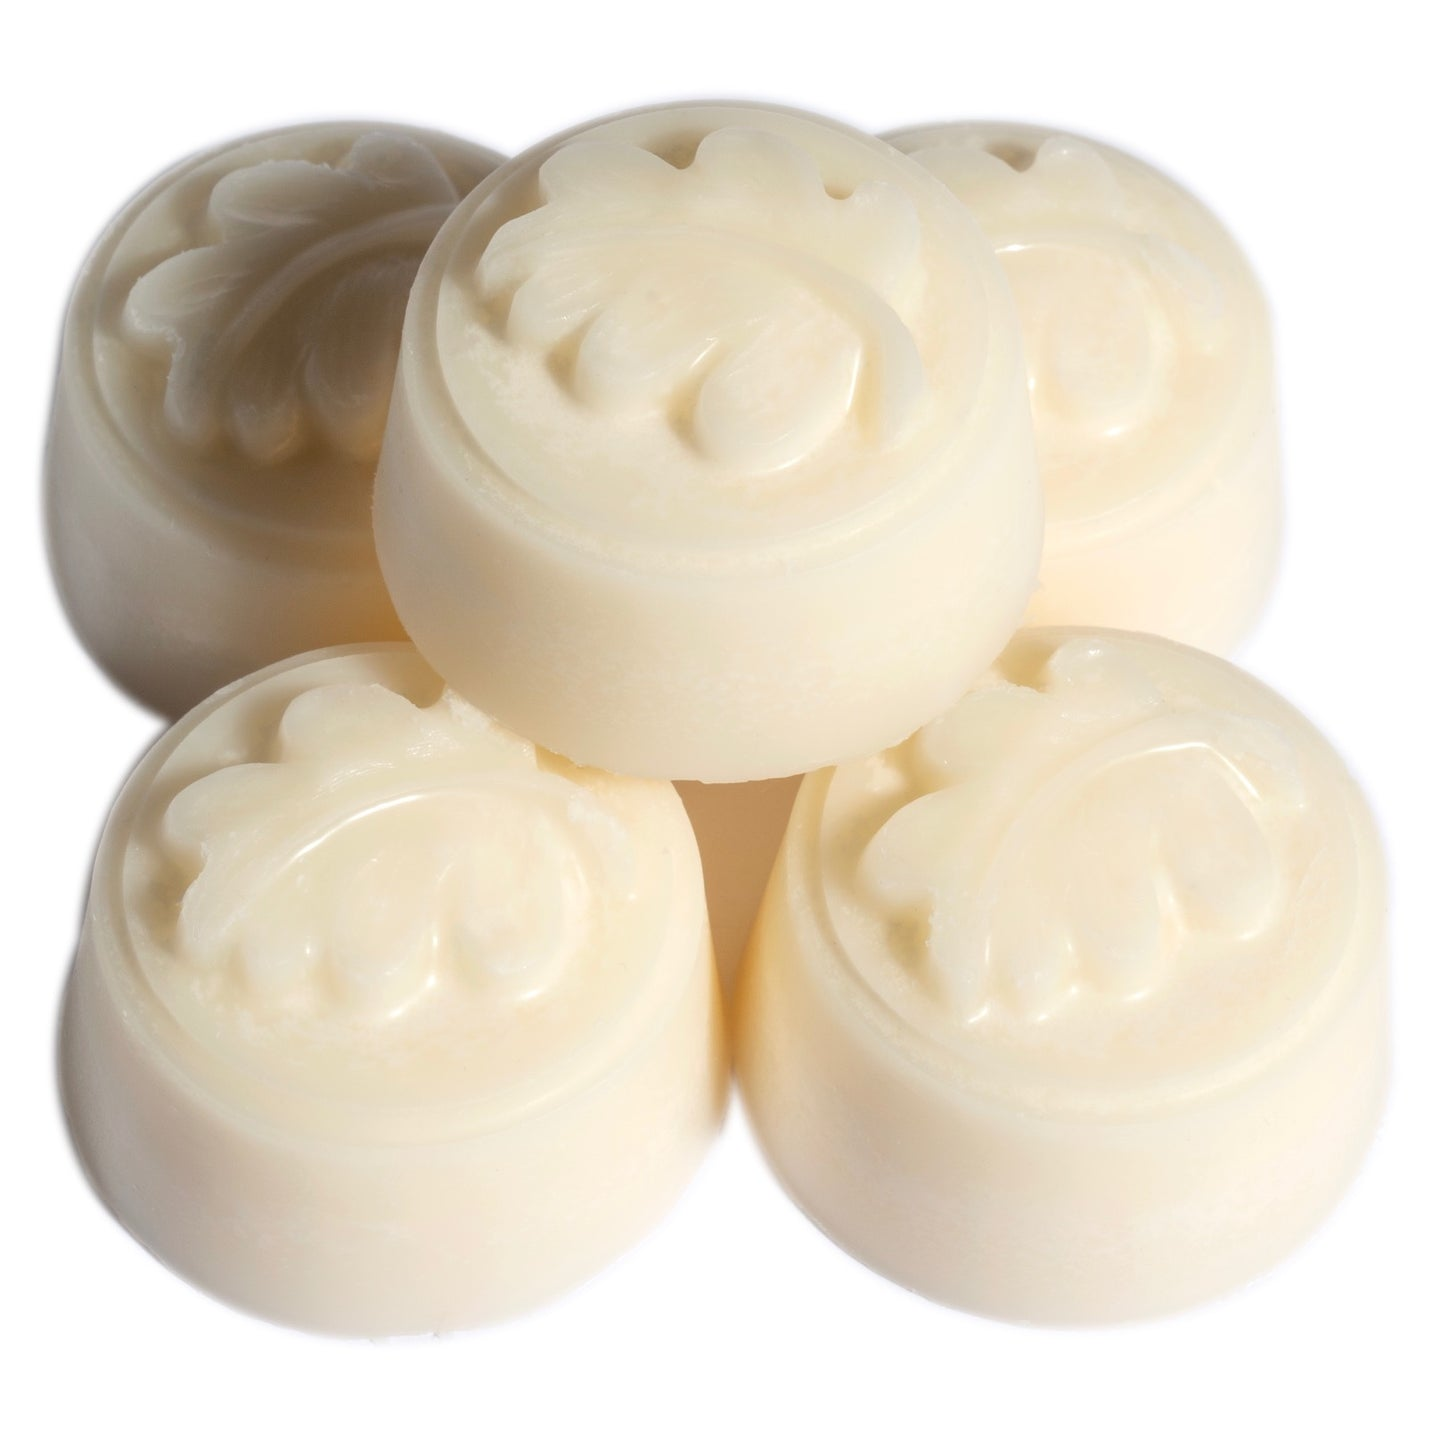 Lemongrass, Lime and Patchouli - 5 Large Soy Wax Melts - By Kerryn